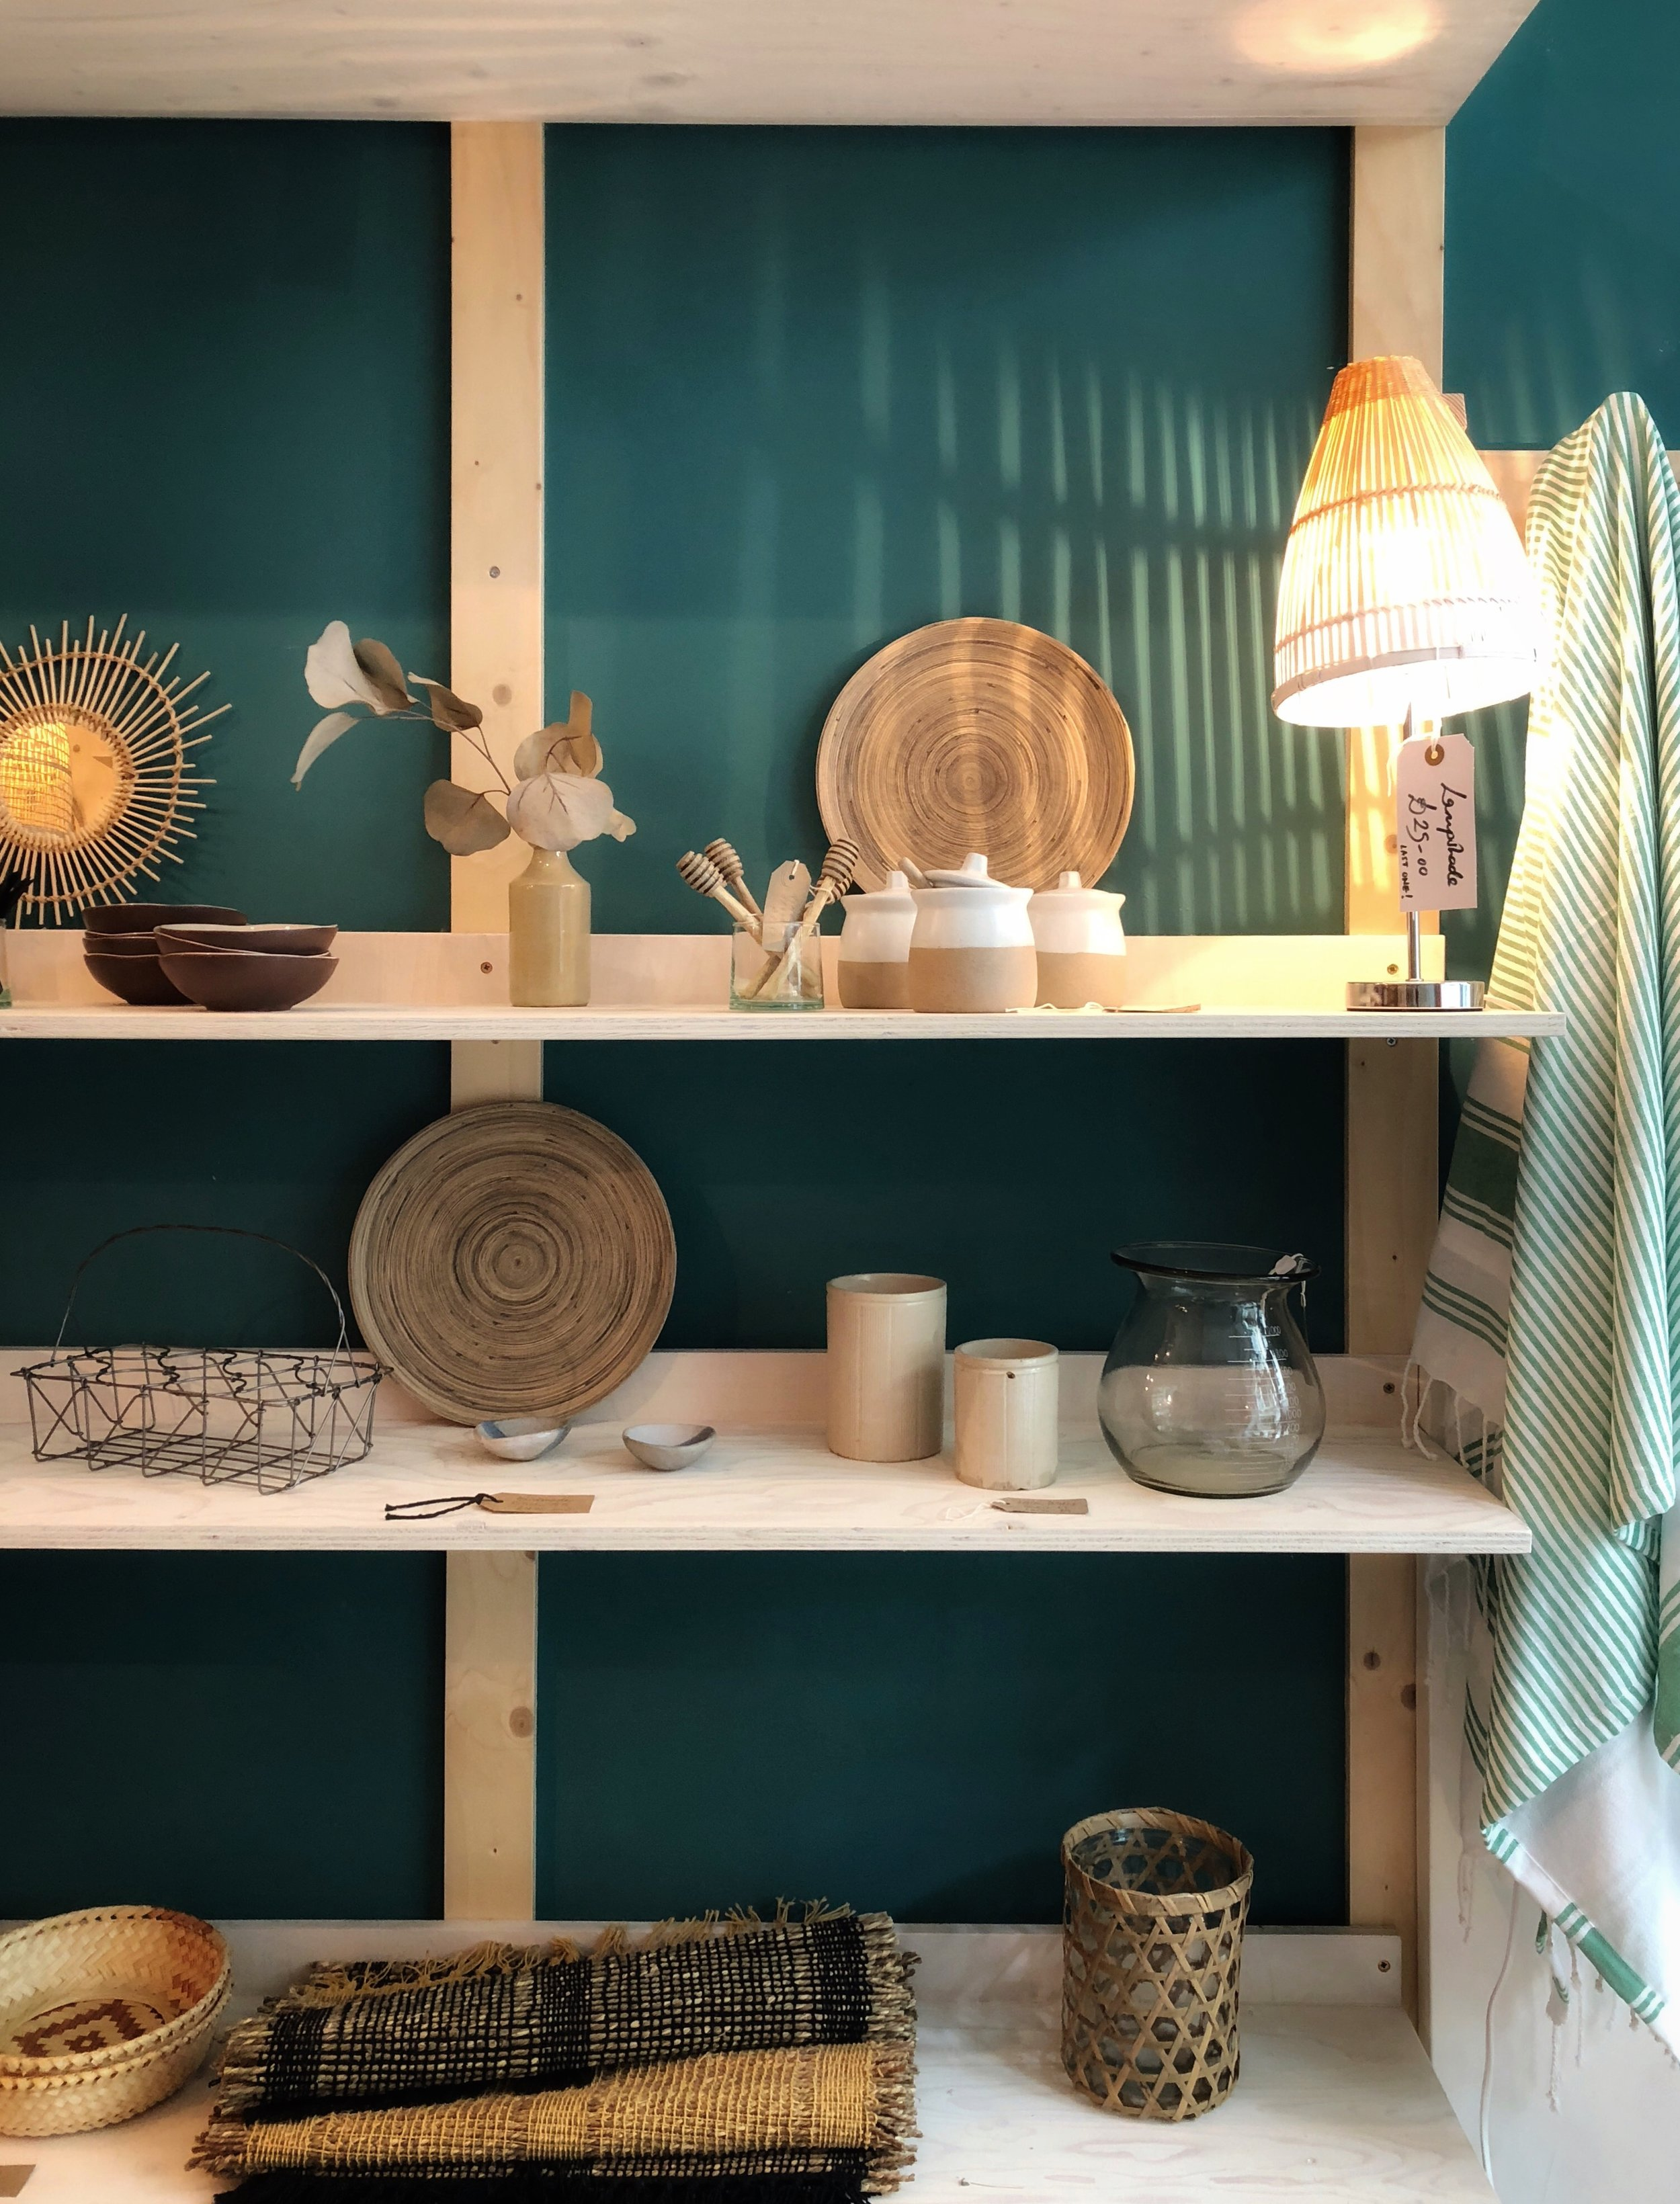 Homeware at the Cote de Folk by Clementine May.JPG